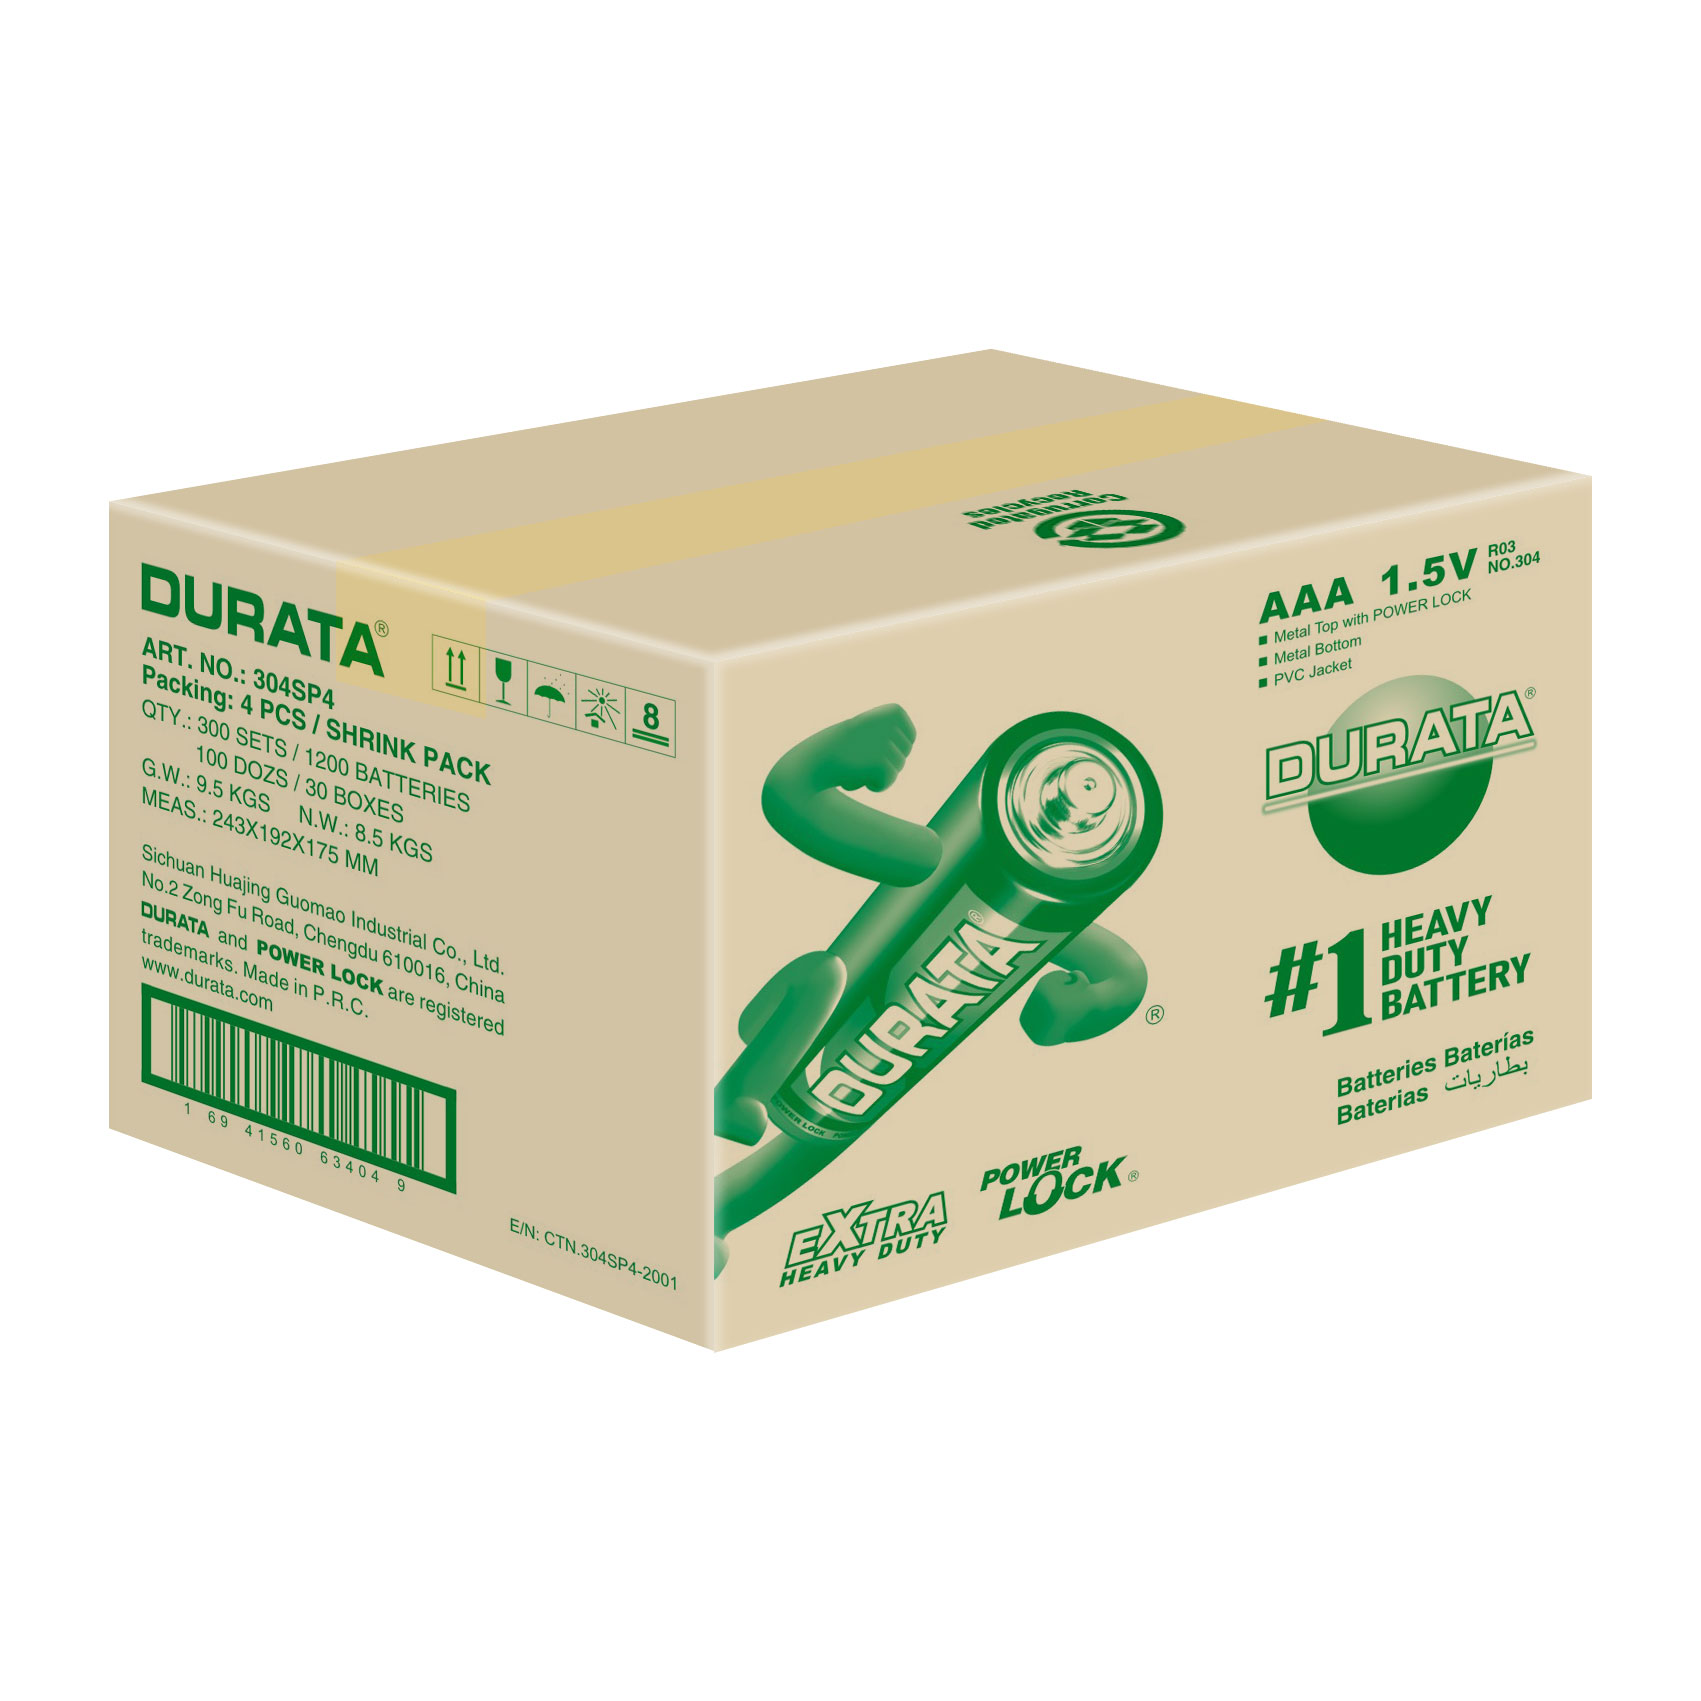 DURATA Size AAA - Shrink Pack 4 Batteries - CTN